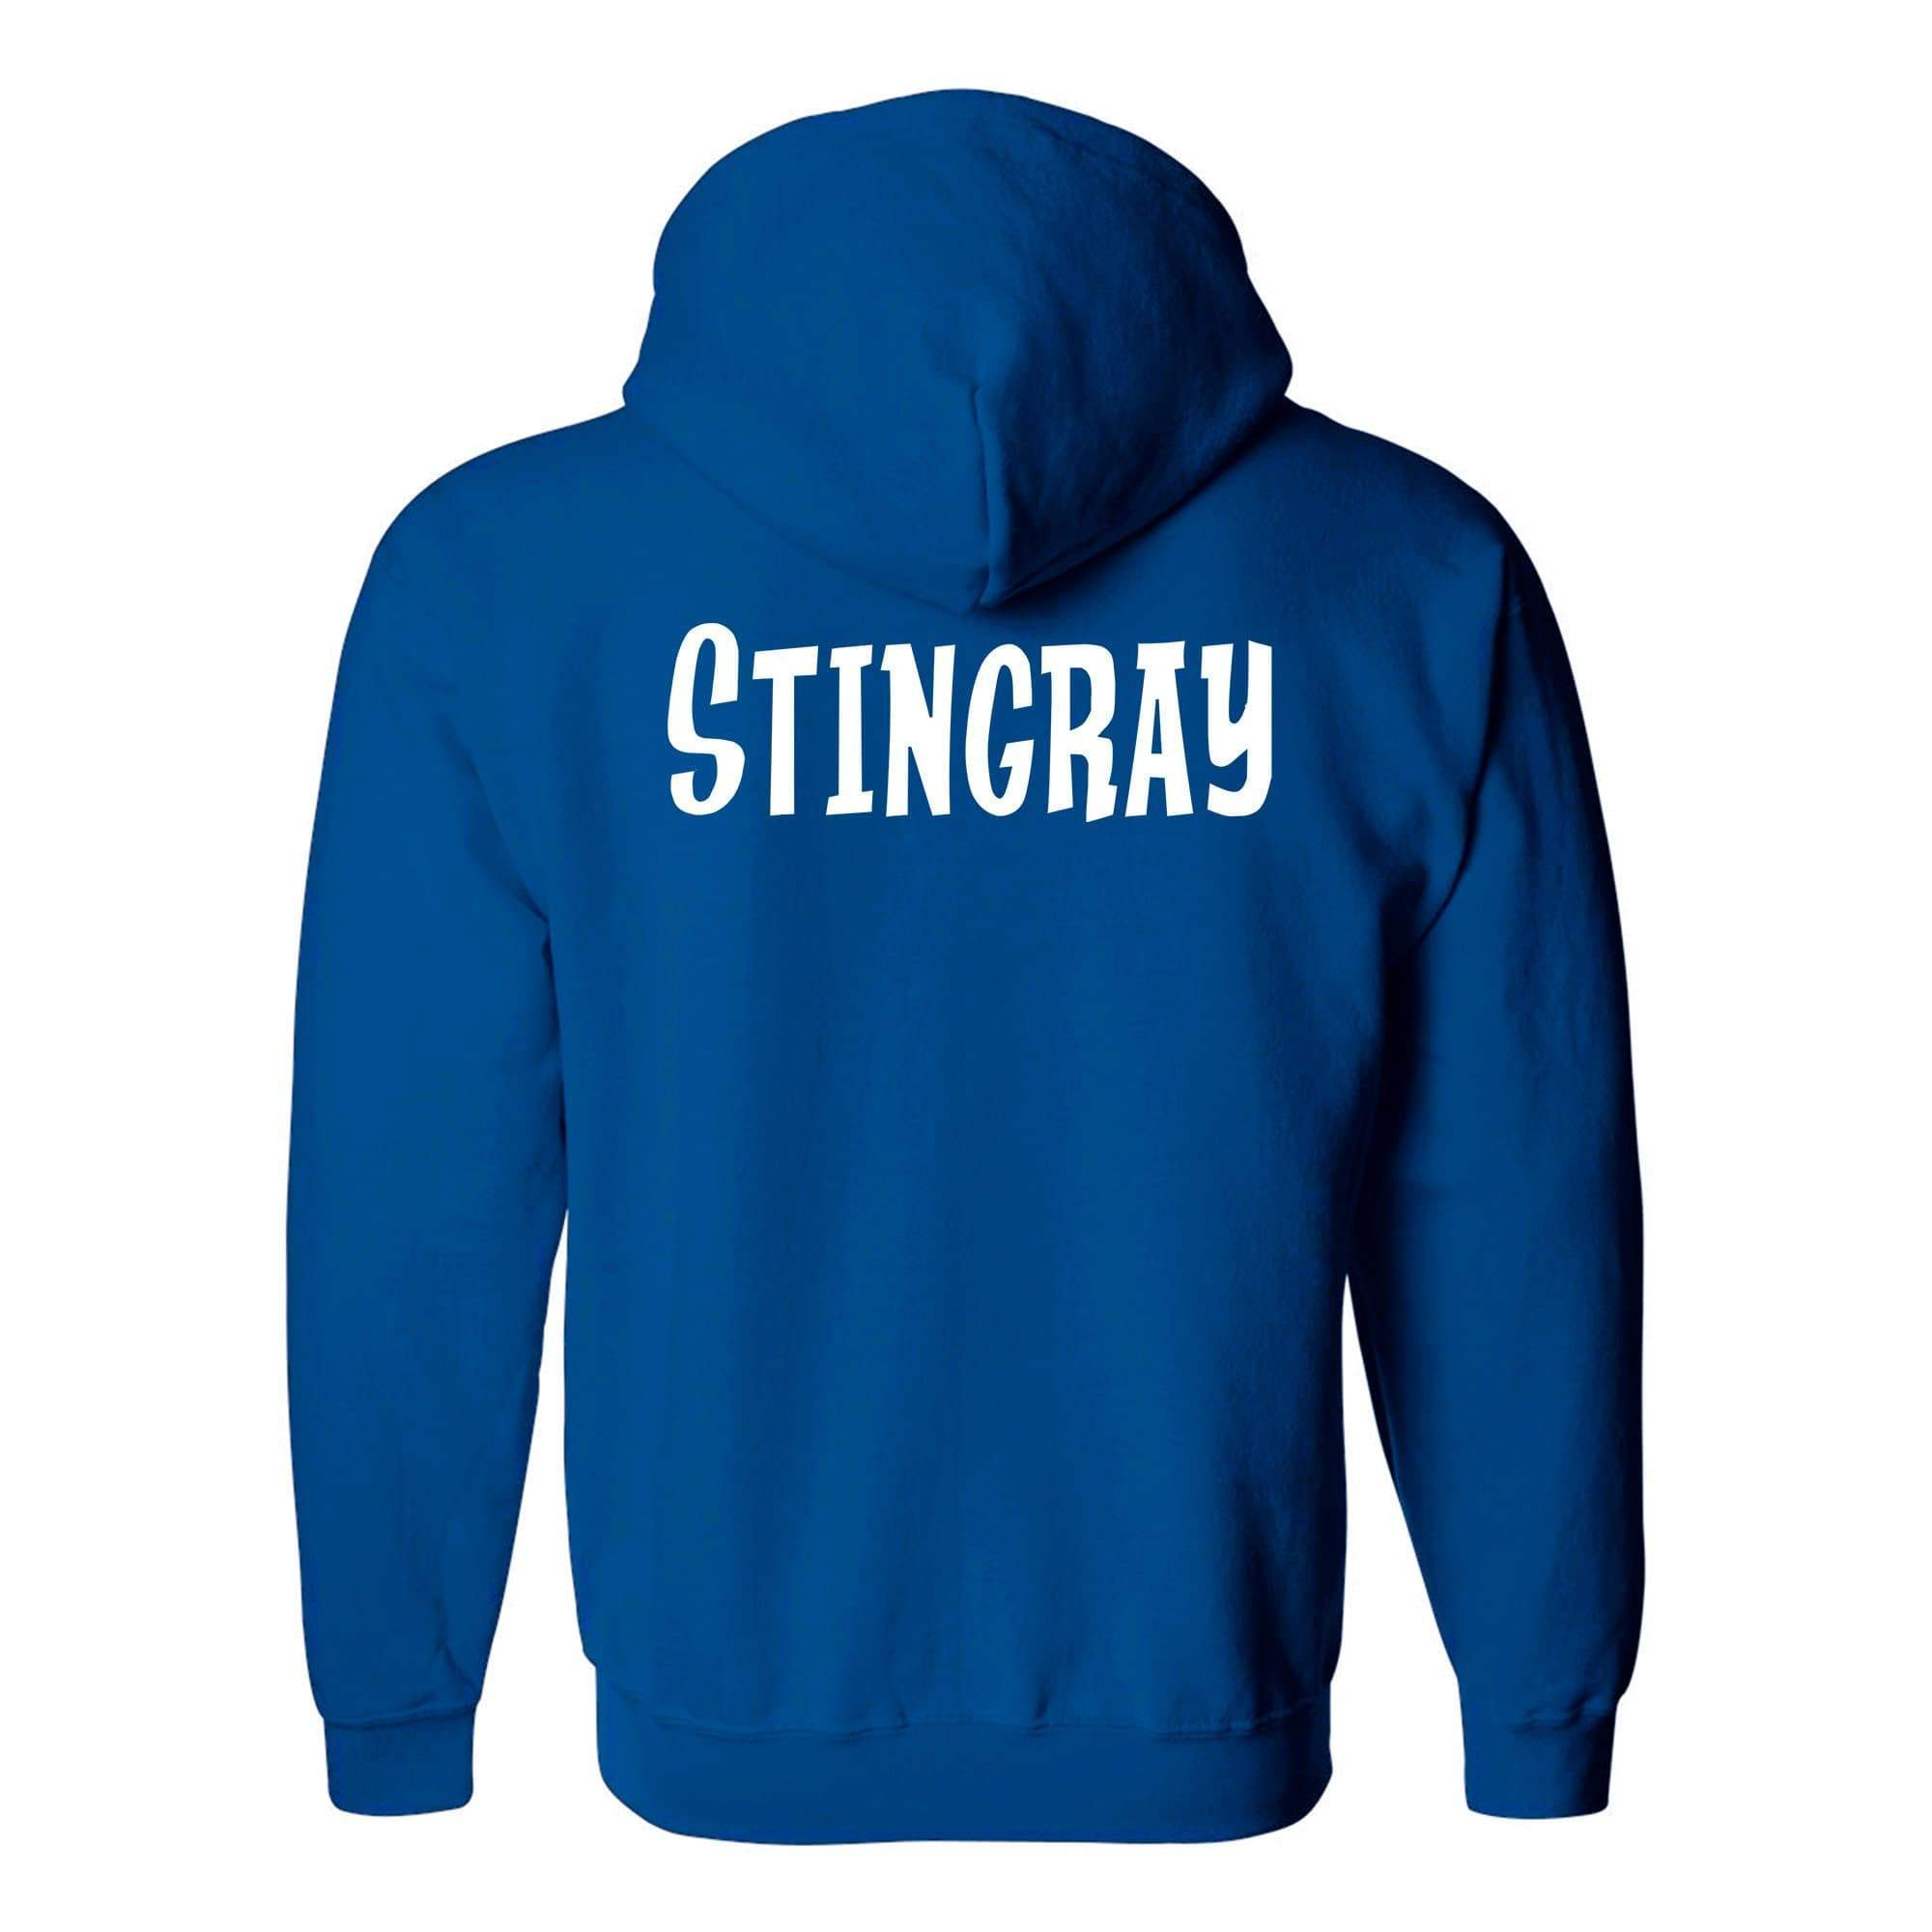 Stingray Hoodie [Official & Exclusive] - The Gerry Anderson Store